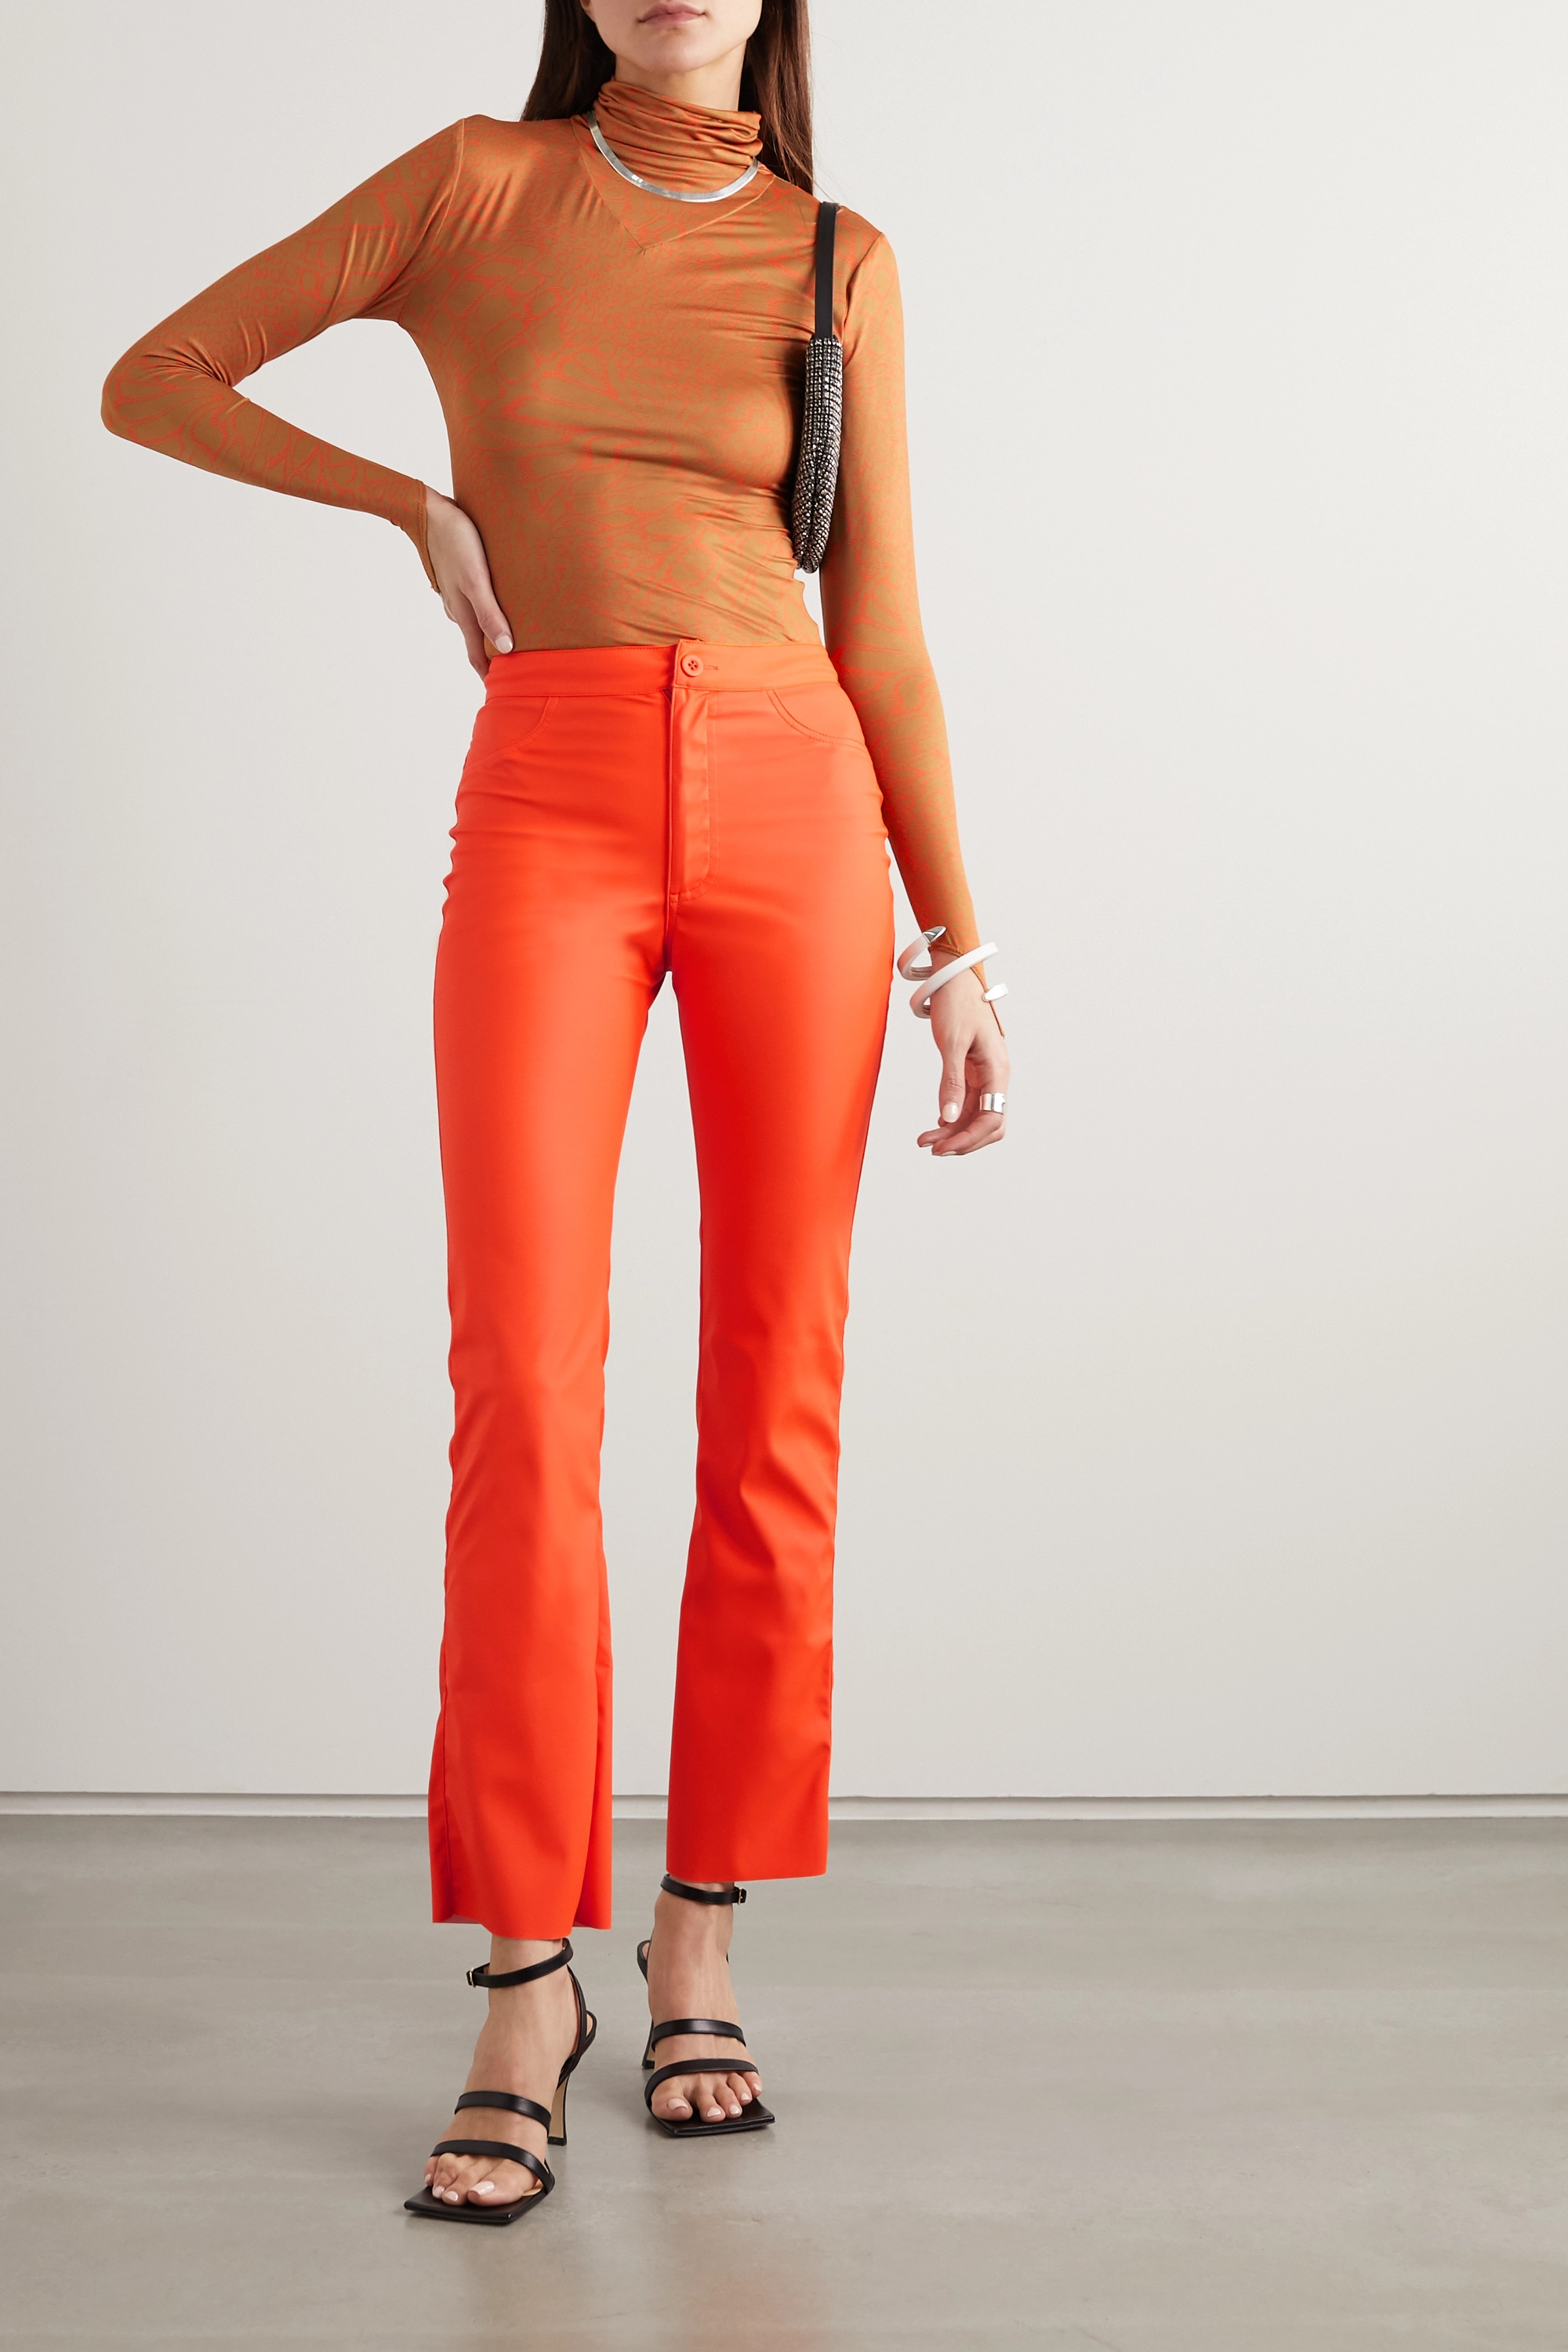 Maisie Wilen Cropped coated-jersey flared pants